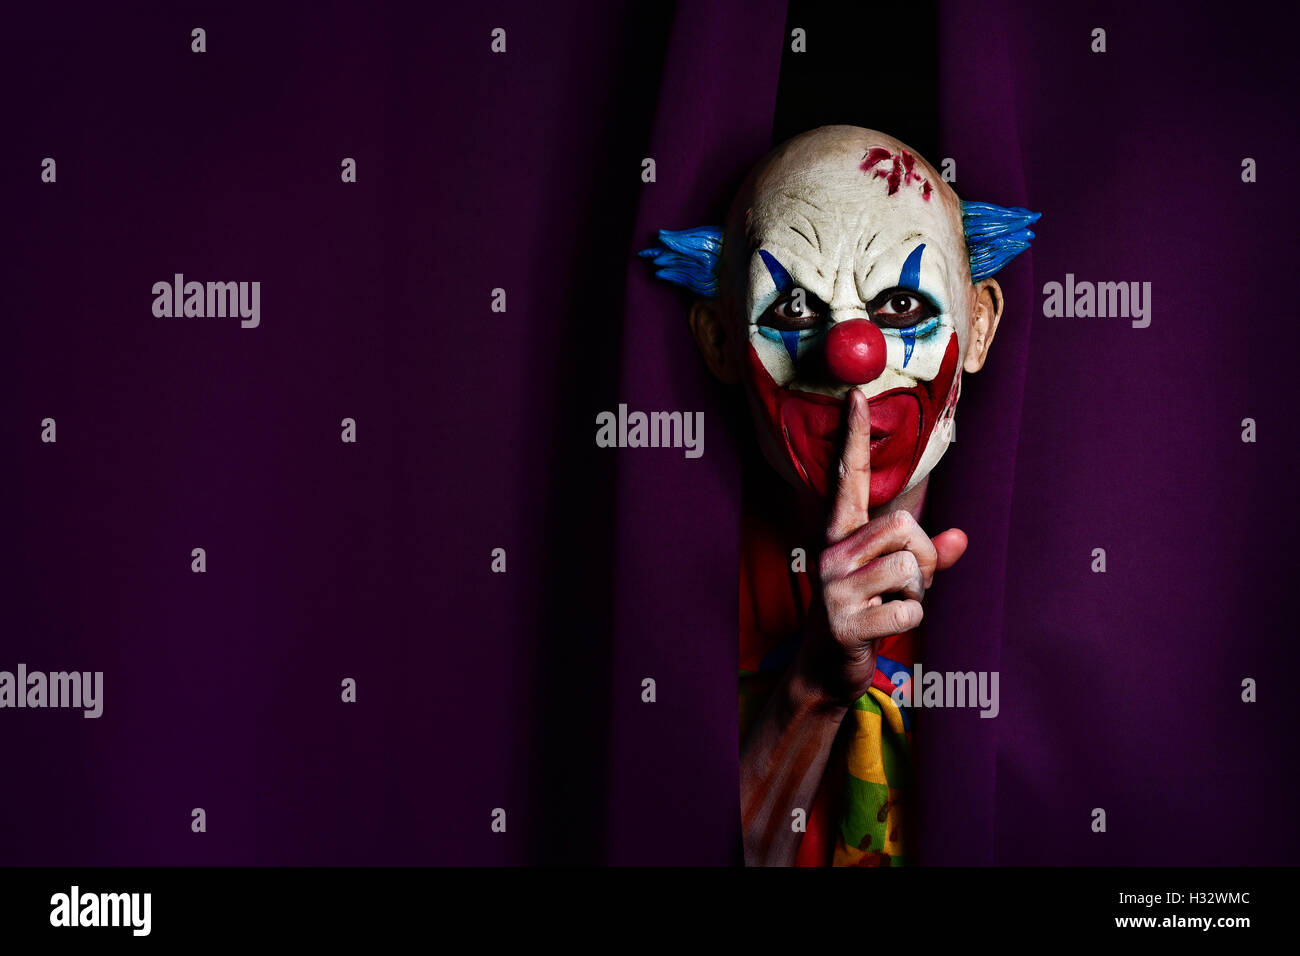 a scary evil clown peering out from a purple stage curtain, with his forefinger in front of his lips, asking for - Stock Image